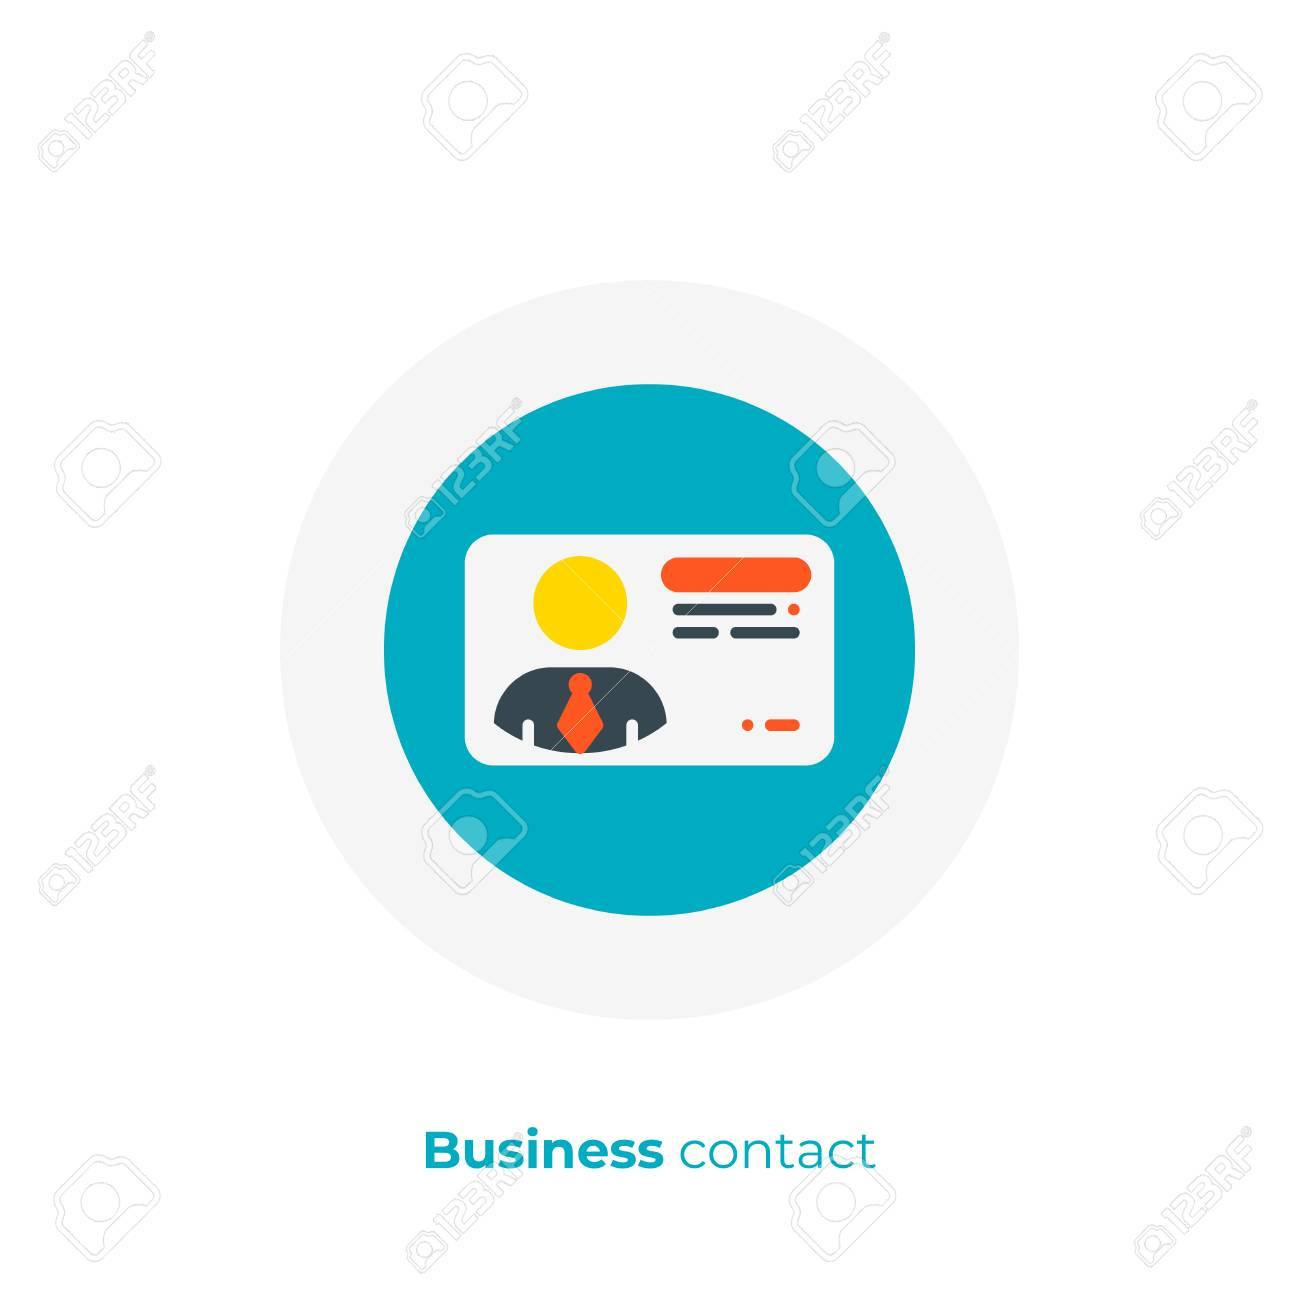 Business Contact Flat Art Icon Digital Business Card Vector